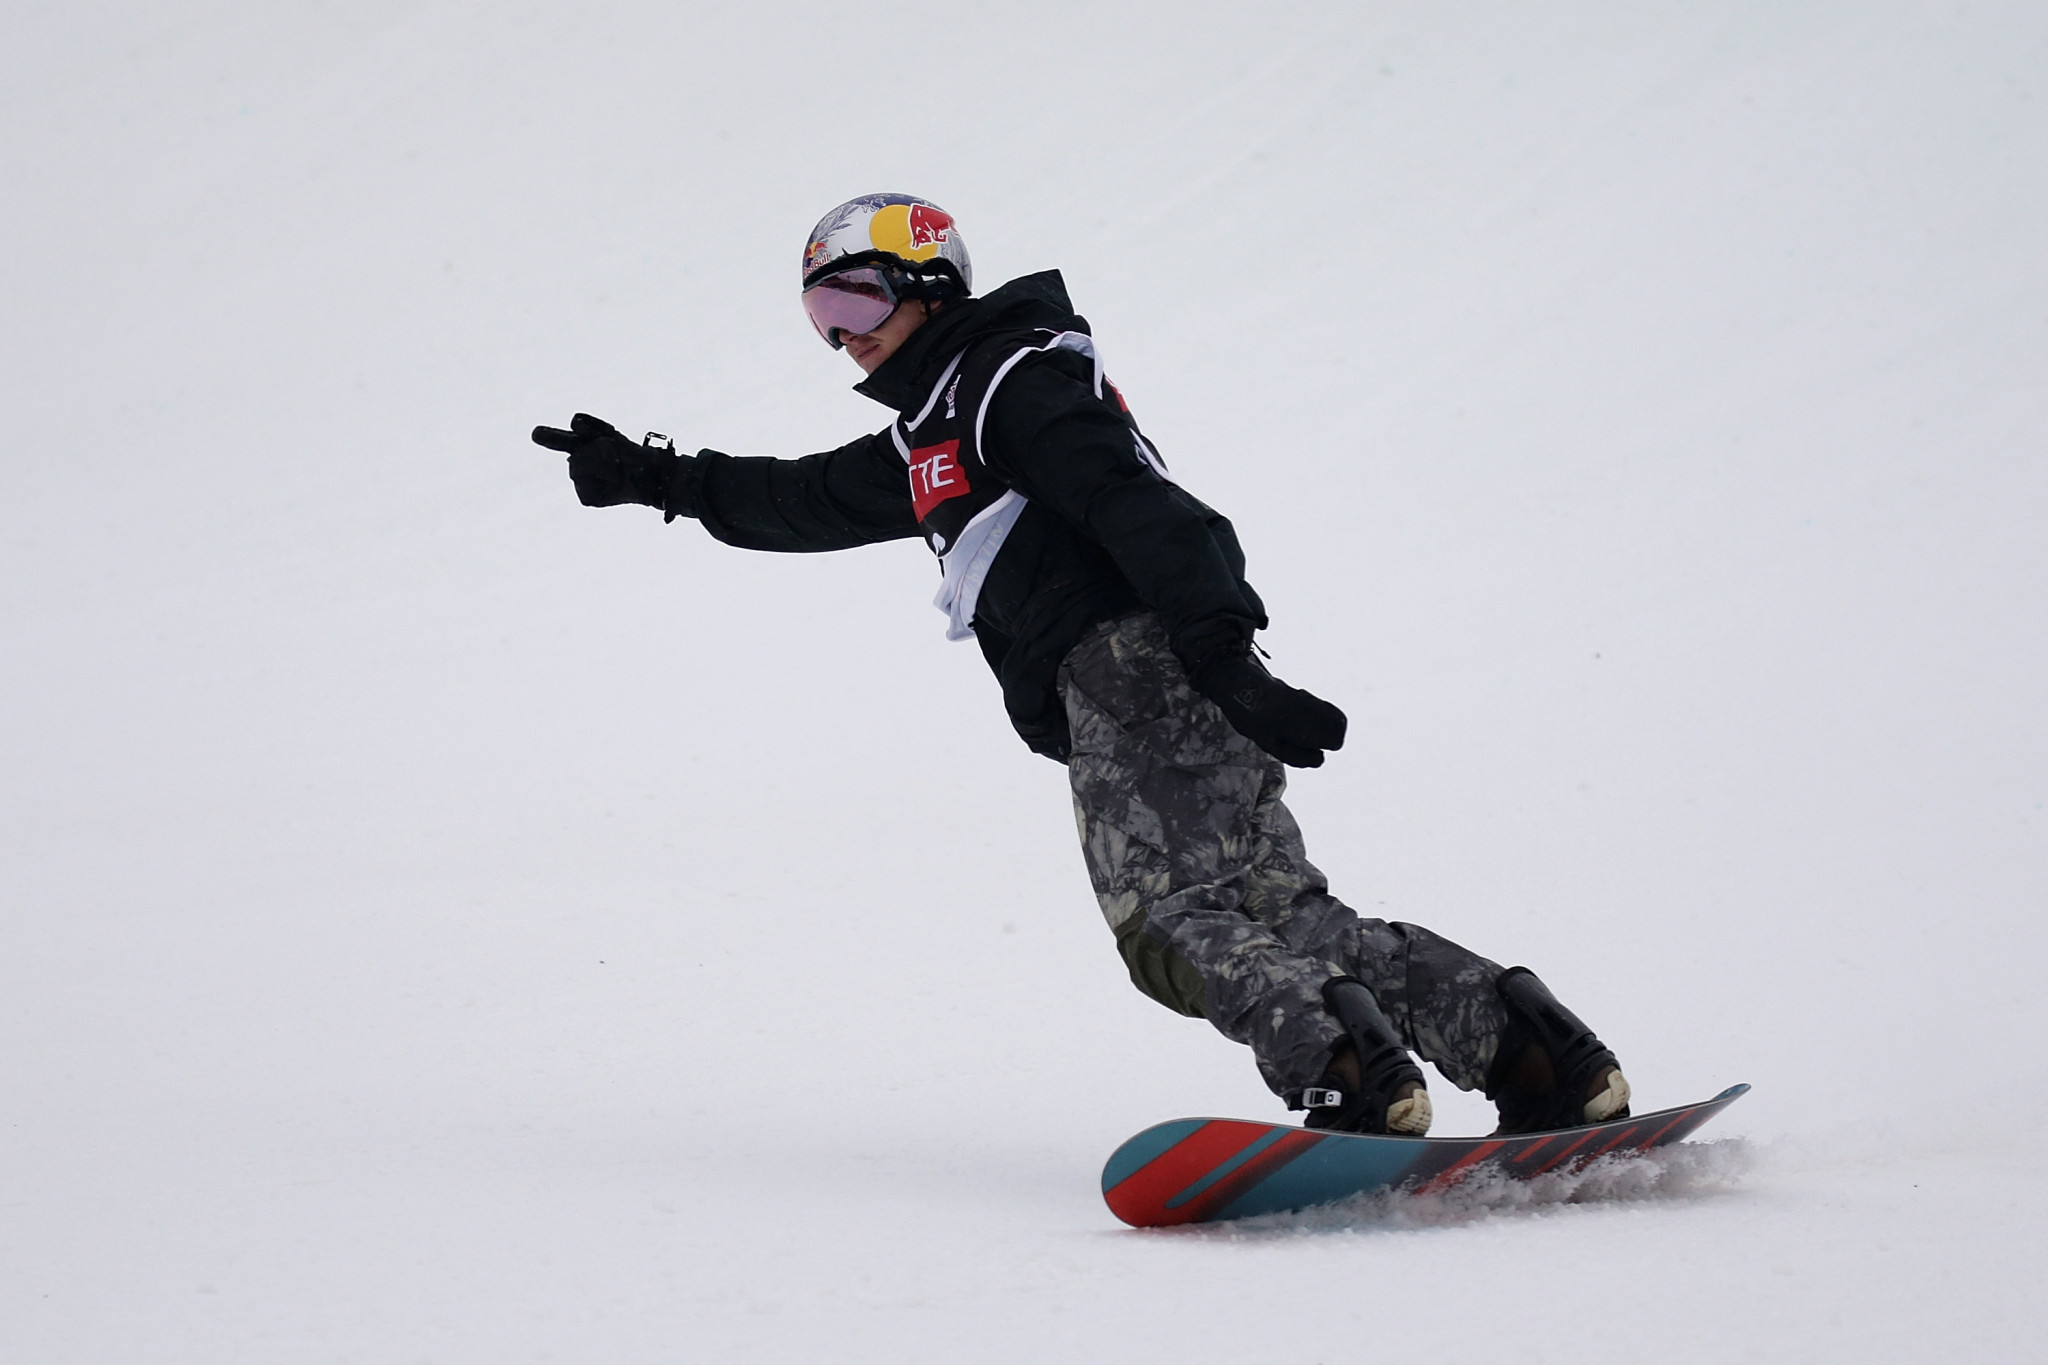 McMorris takes title at FIS Snowboard Big Air World Cup in first event since accident